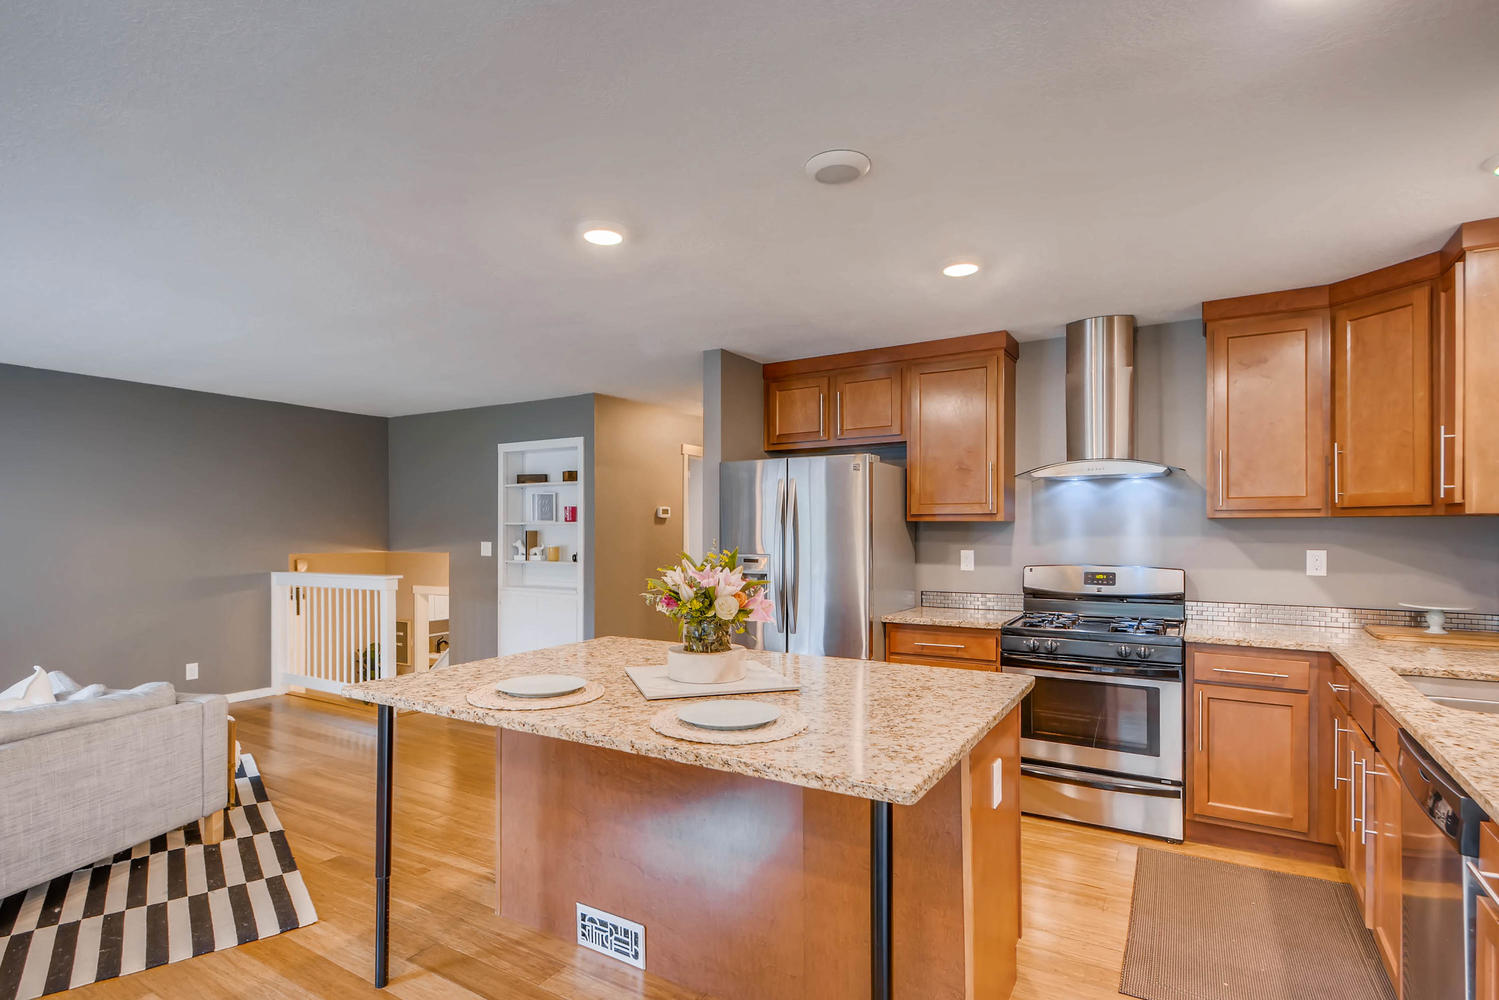 Granite Countertops, Stainless Appliances, and More!